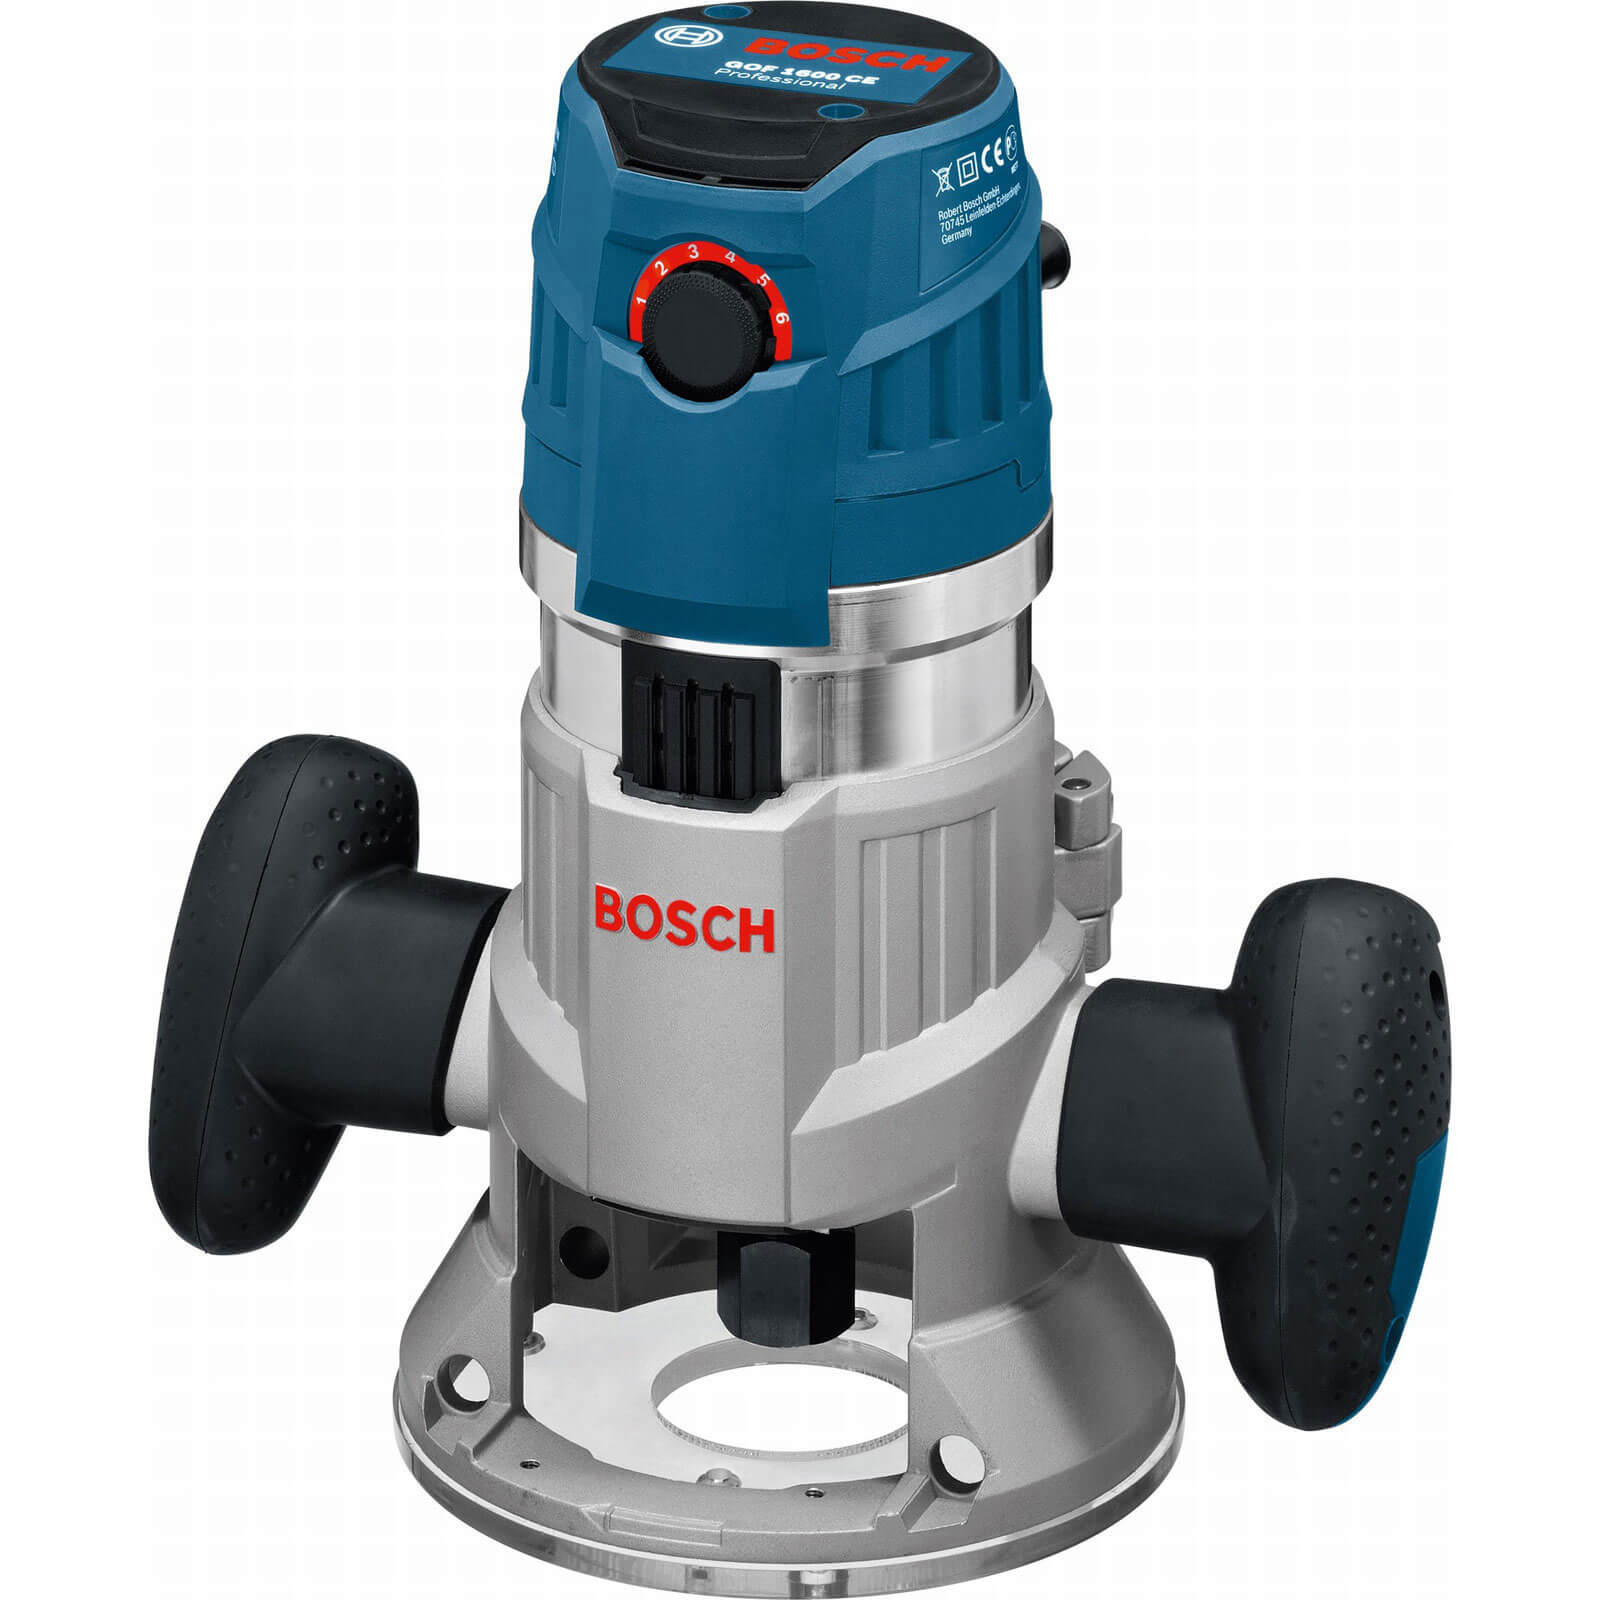 bosch gmf 1600 ce electric fixed plunge router. Black Bedroom Furniture Sets. Home Design Ideas